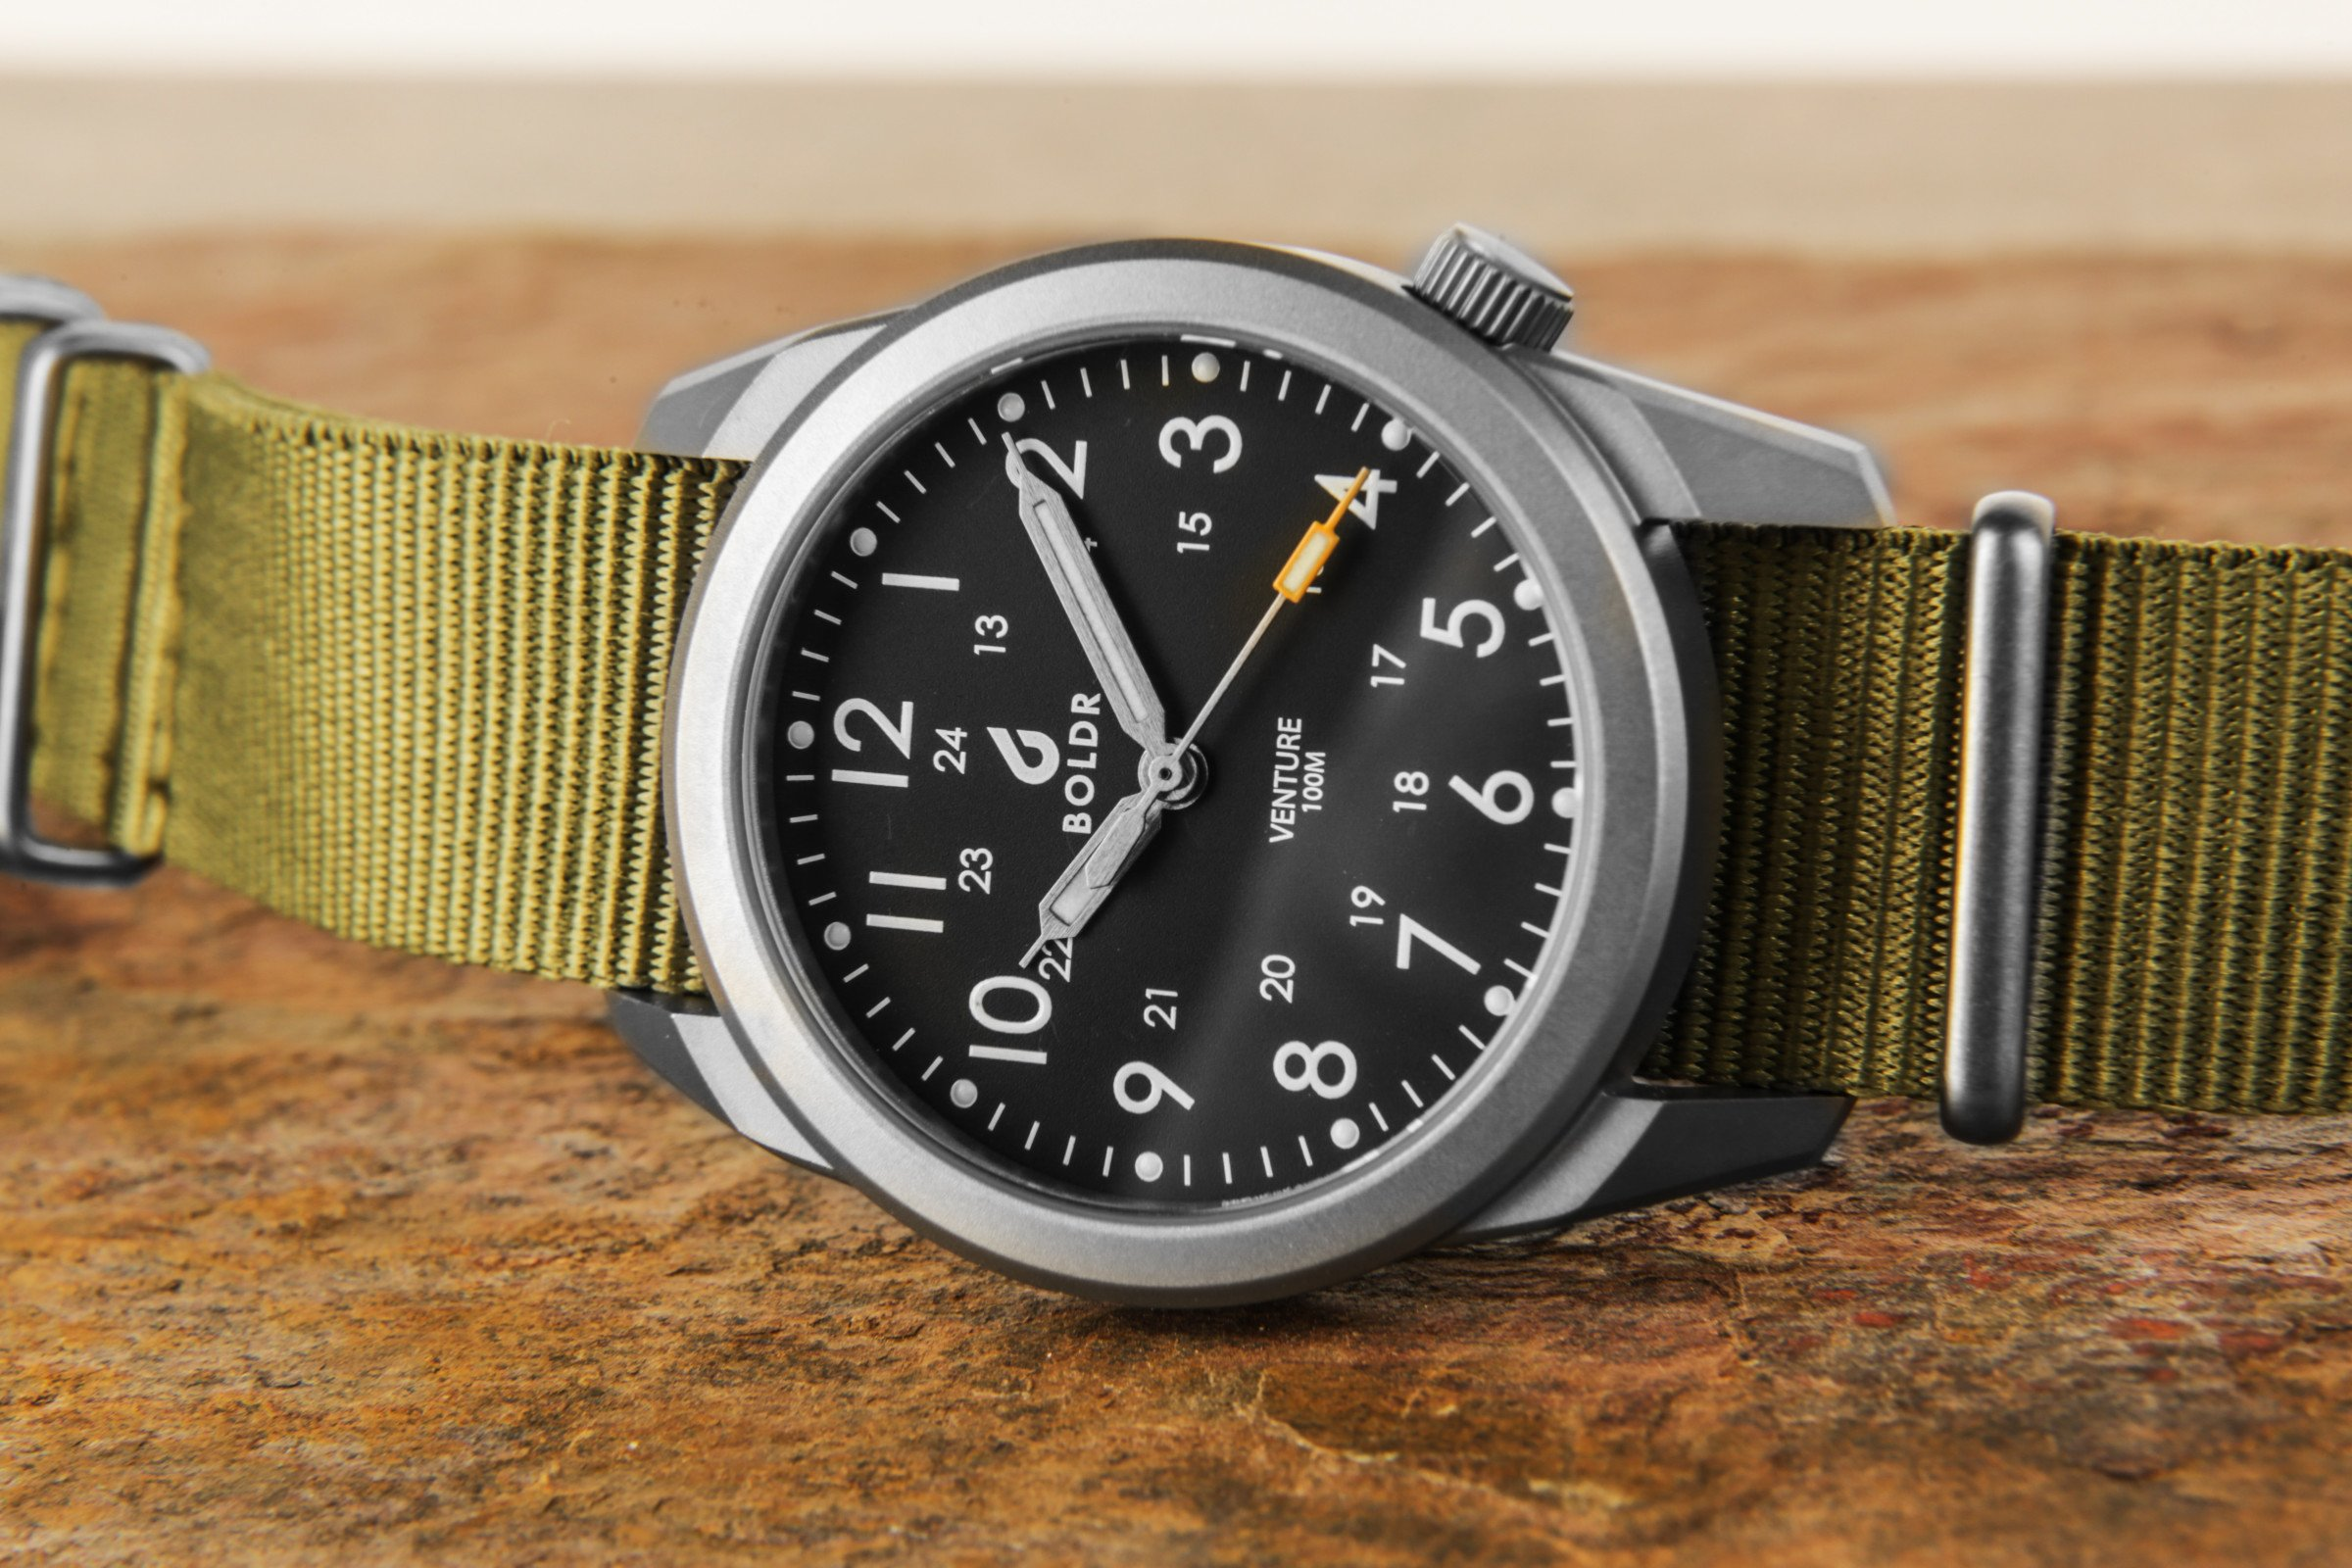 BOLDR Venture 100€ Field Watch